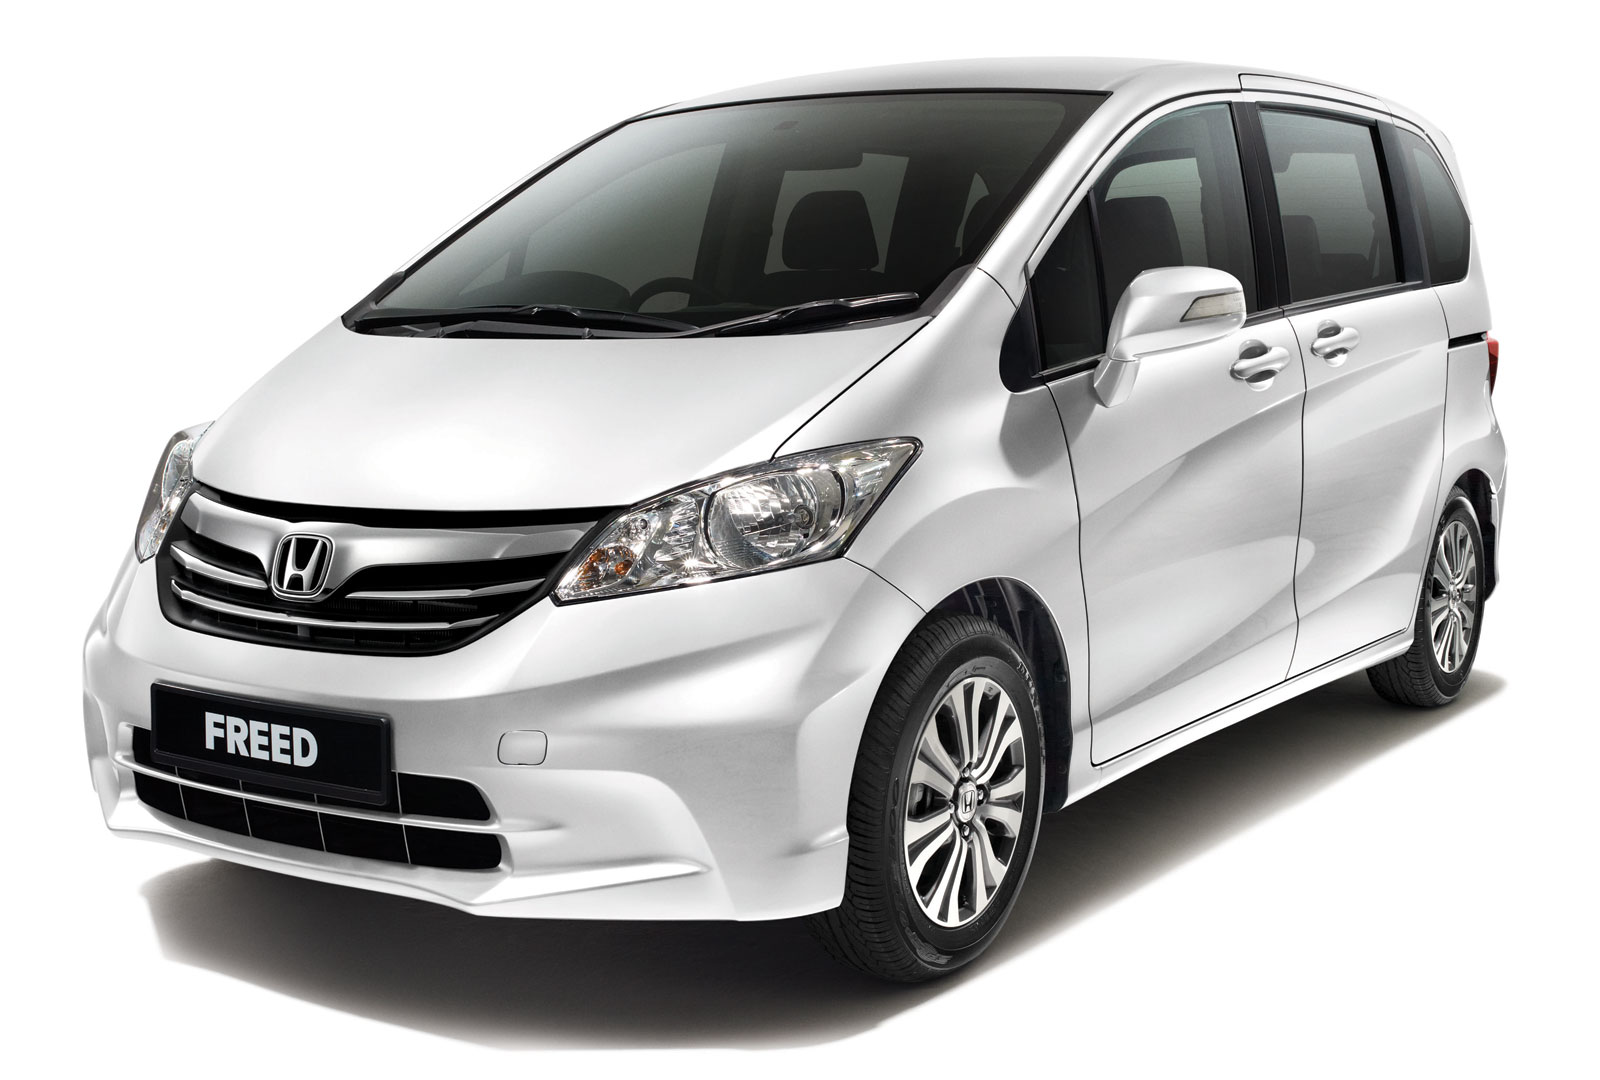 honda freed mpv facelifted - rm99,800 to rm113,500